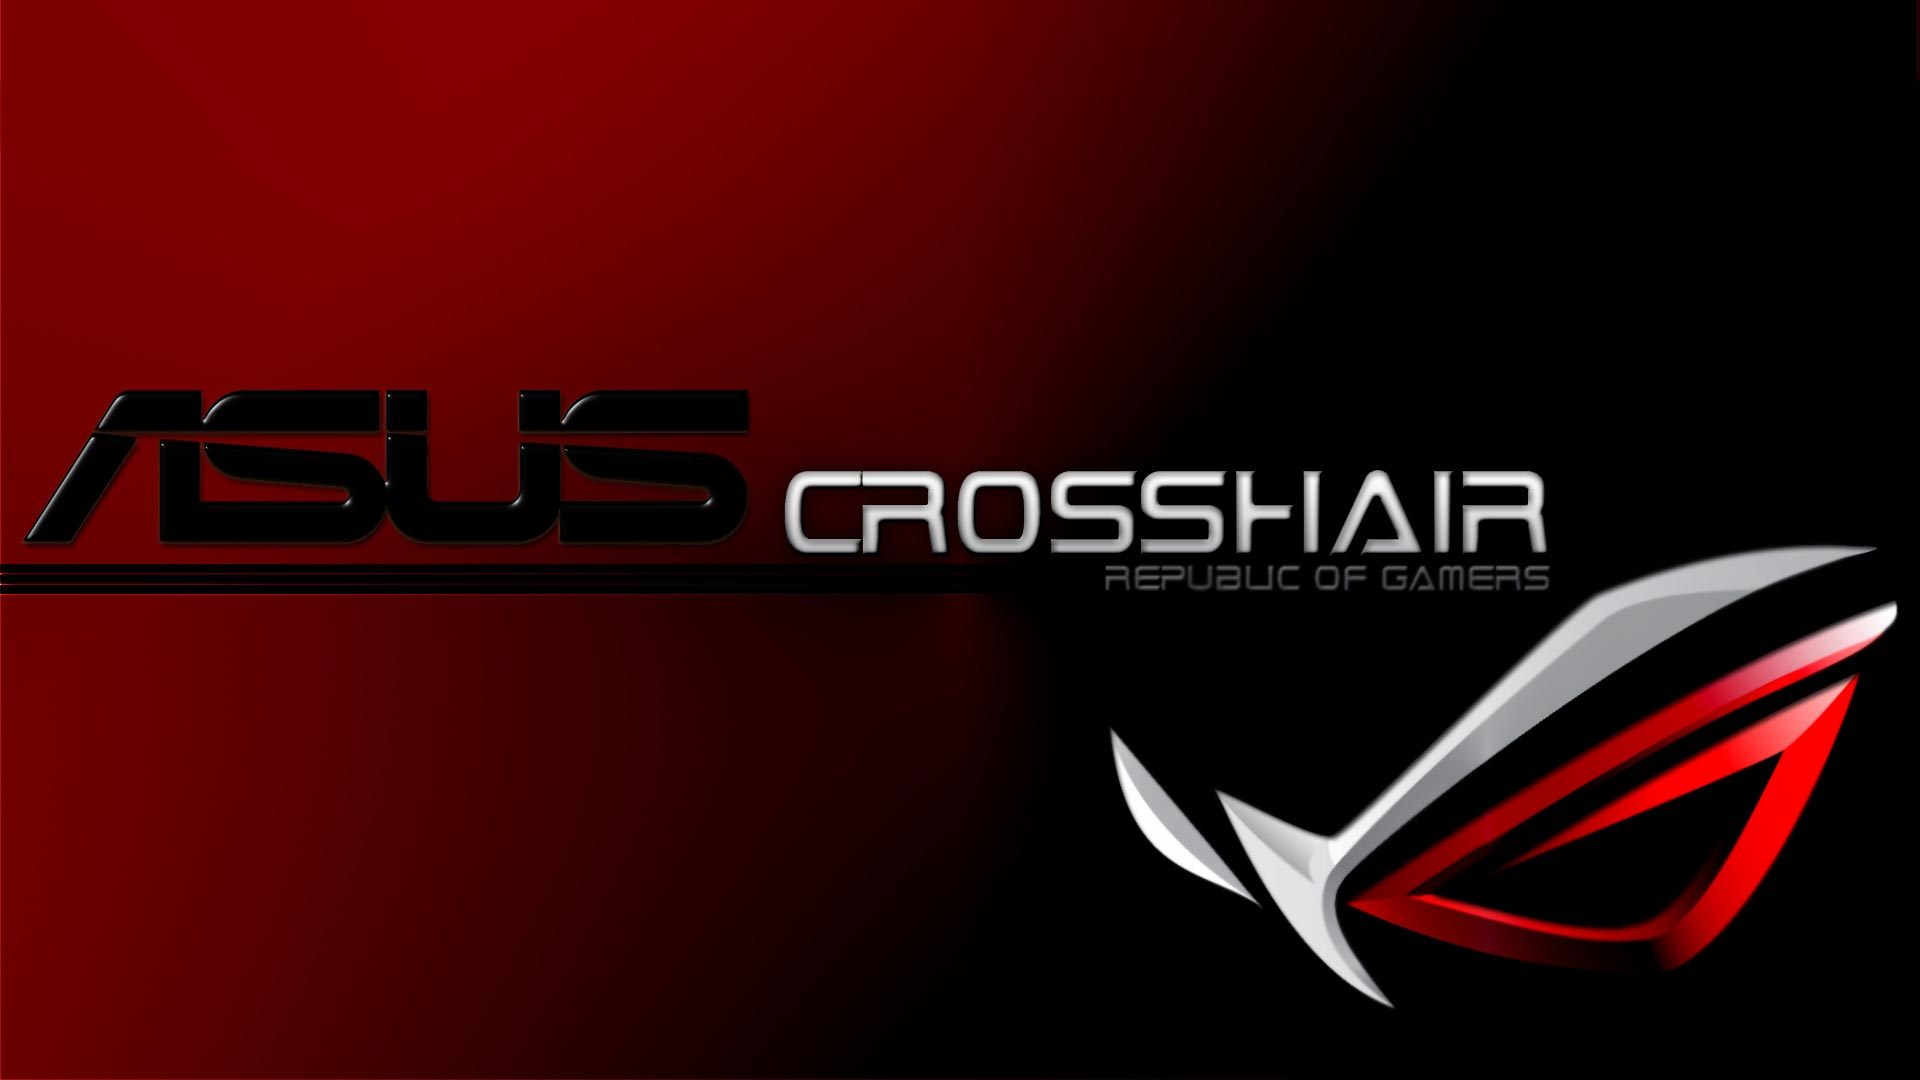 wallpaperfast com asus crosshair hd wallpaper html 1920x1080